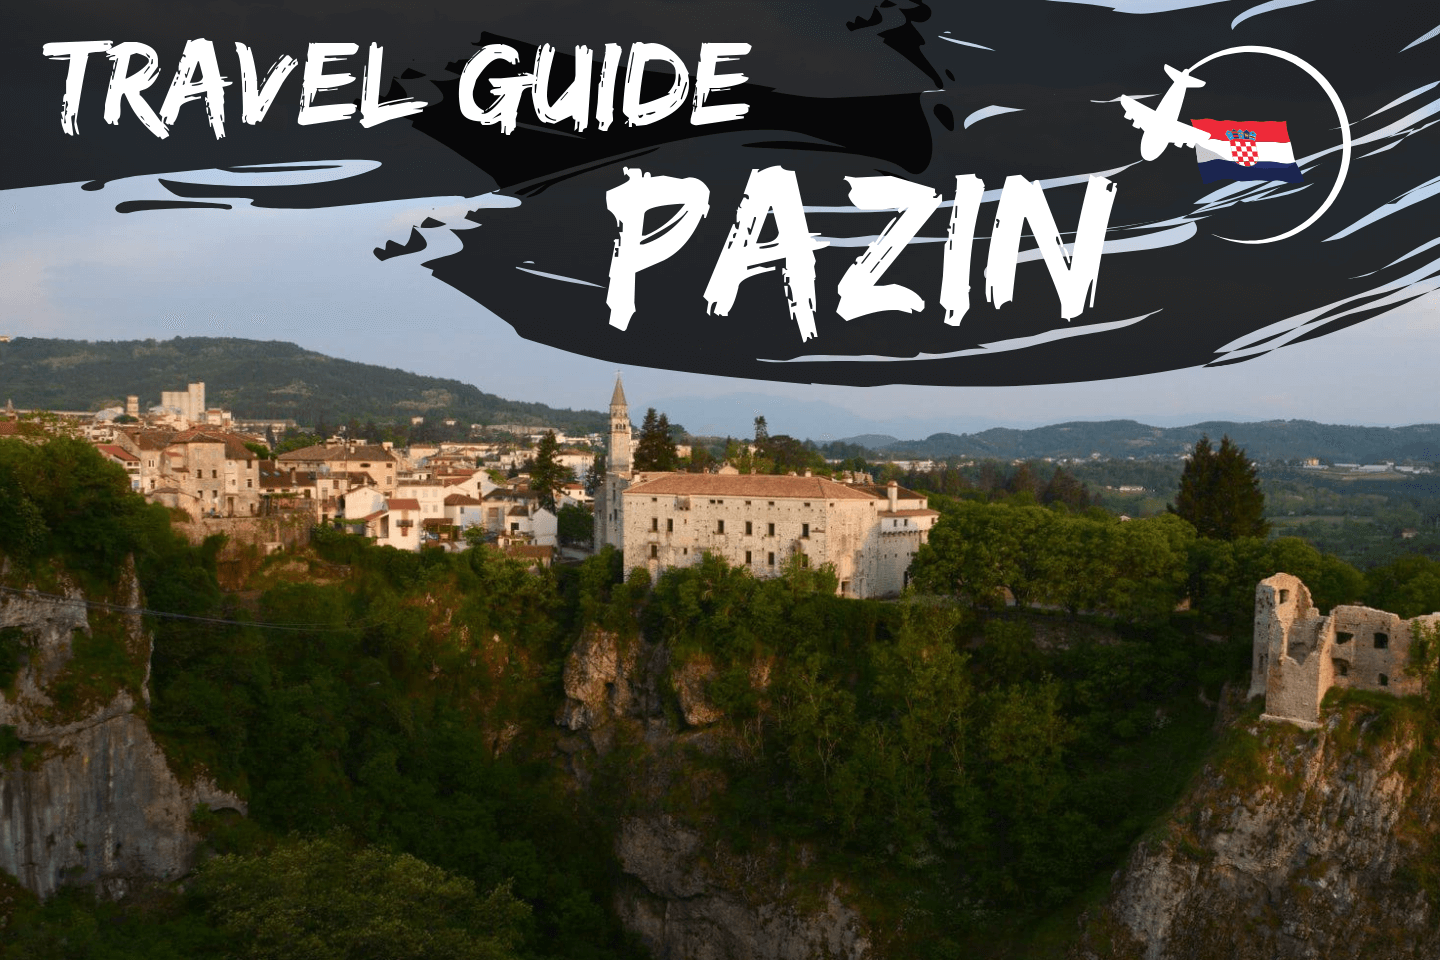 Aerial picture of Pazin